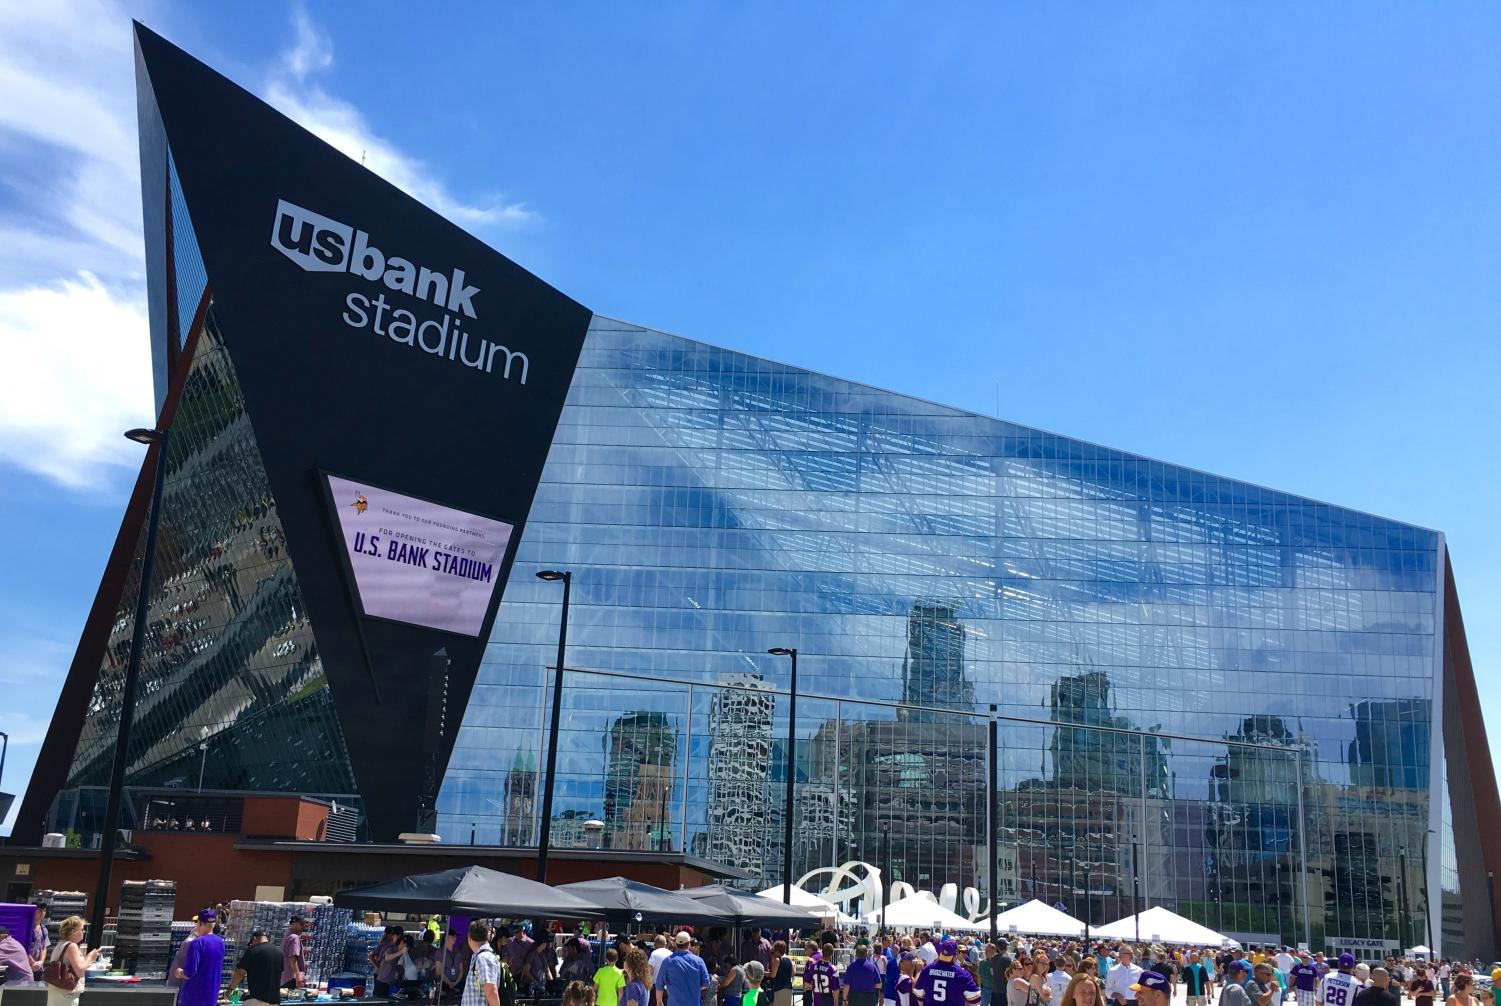 The brand new U.S. Bank Stadium in Minneapolis, Minnesota hosted Super Bowl LII on February 4.